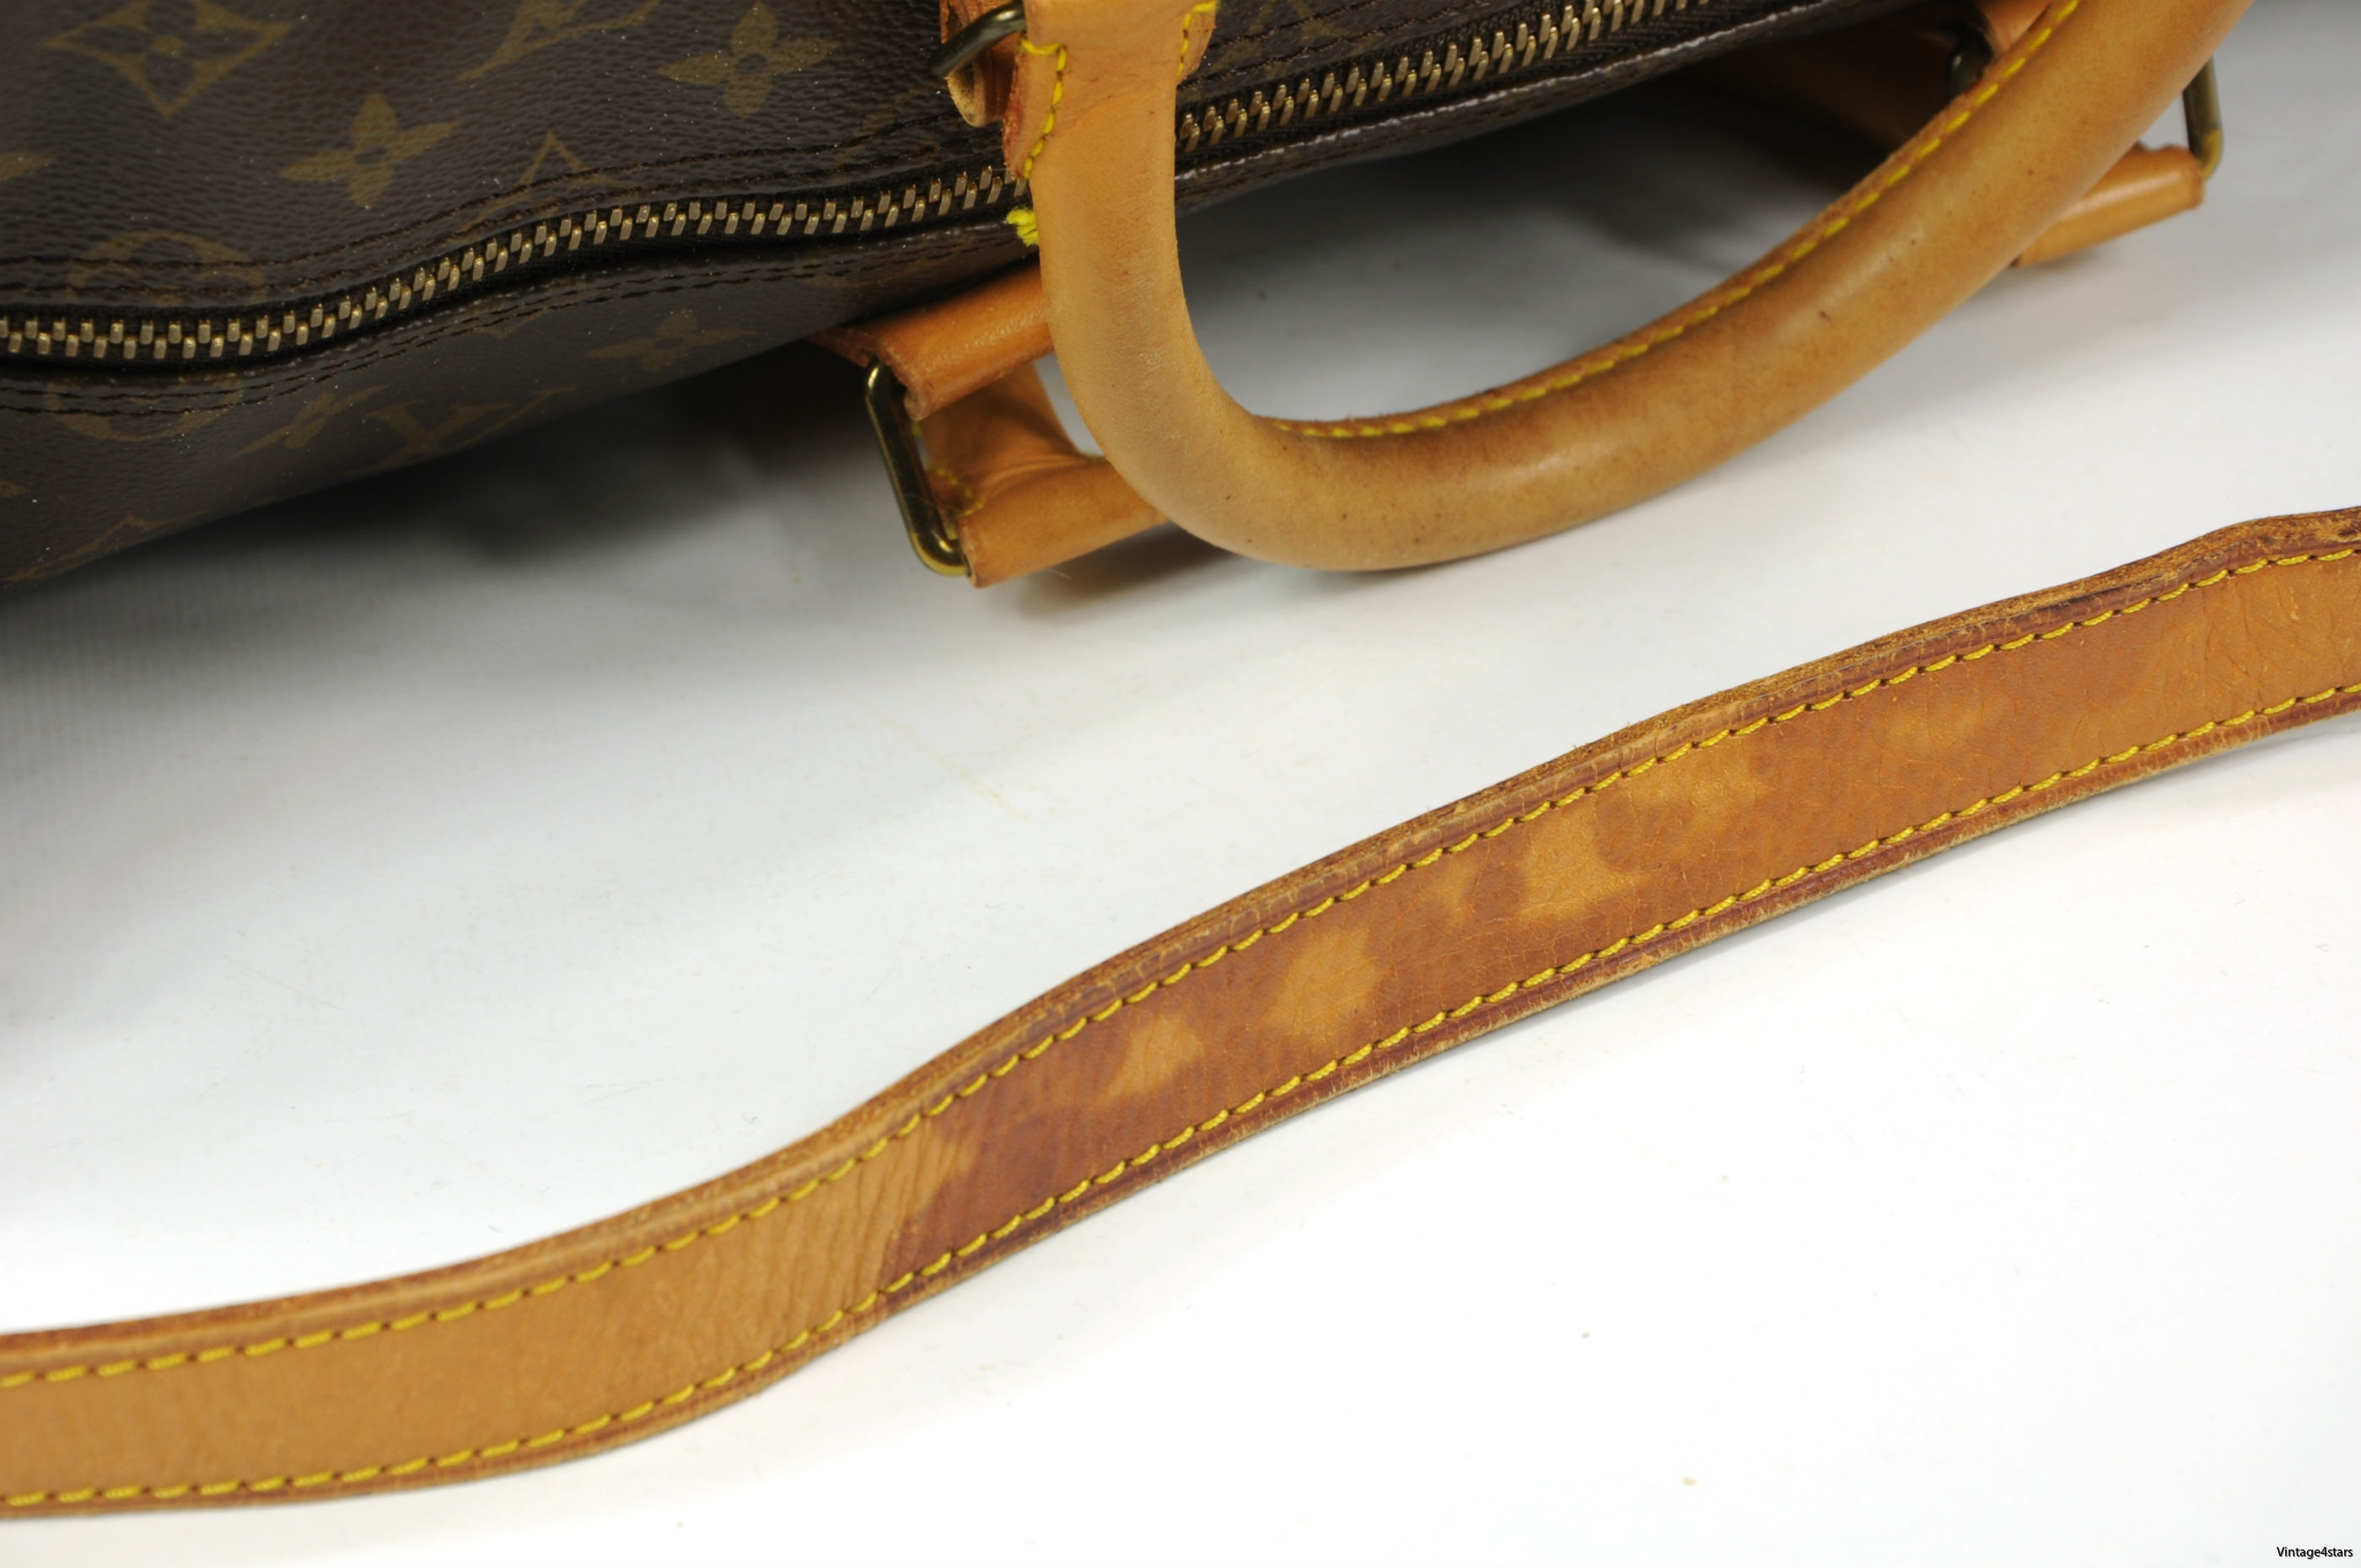 Louis Vuitton Keepall 50 12